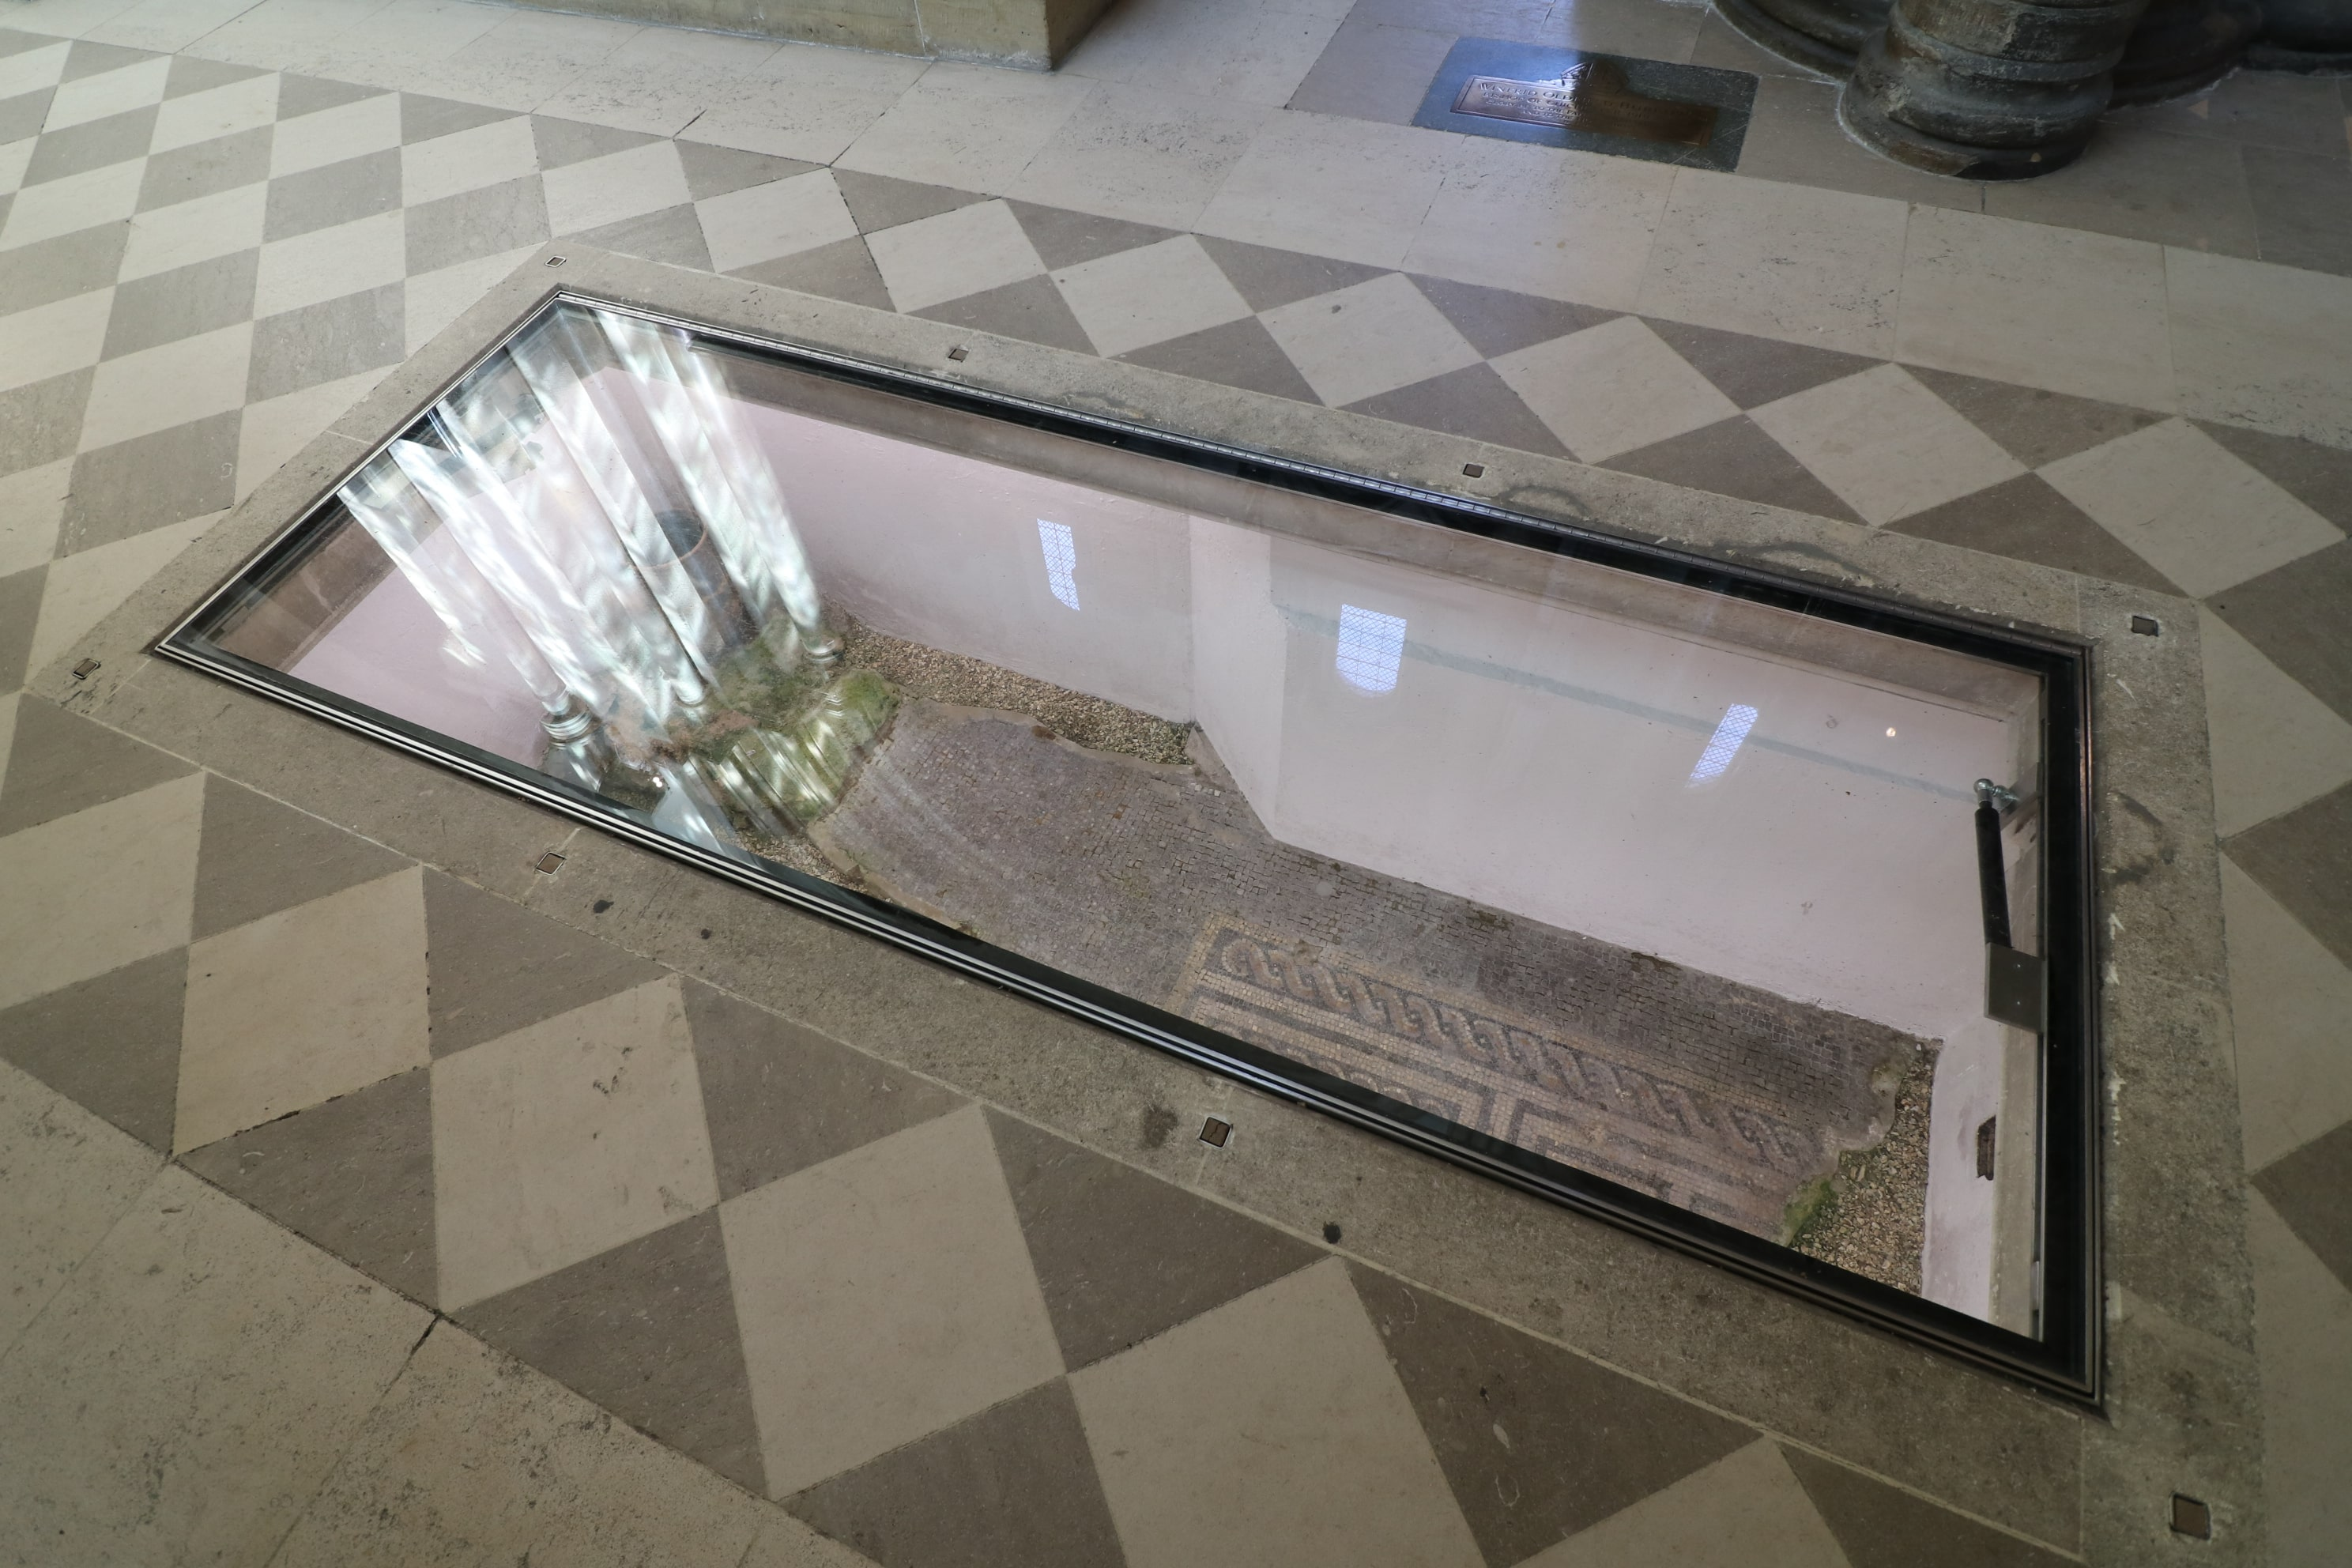 Hinged glass floor panel in Chichester Cathedral